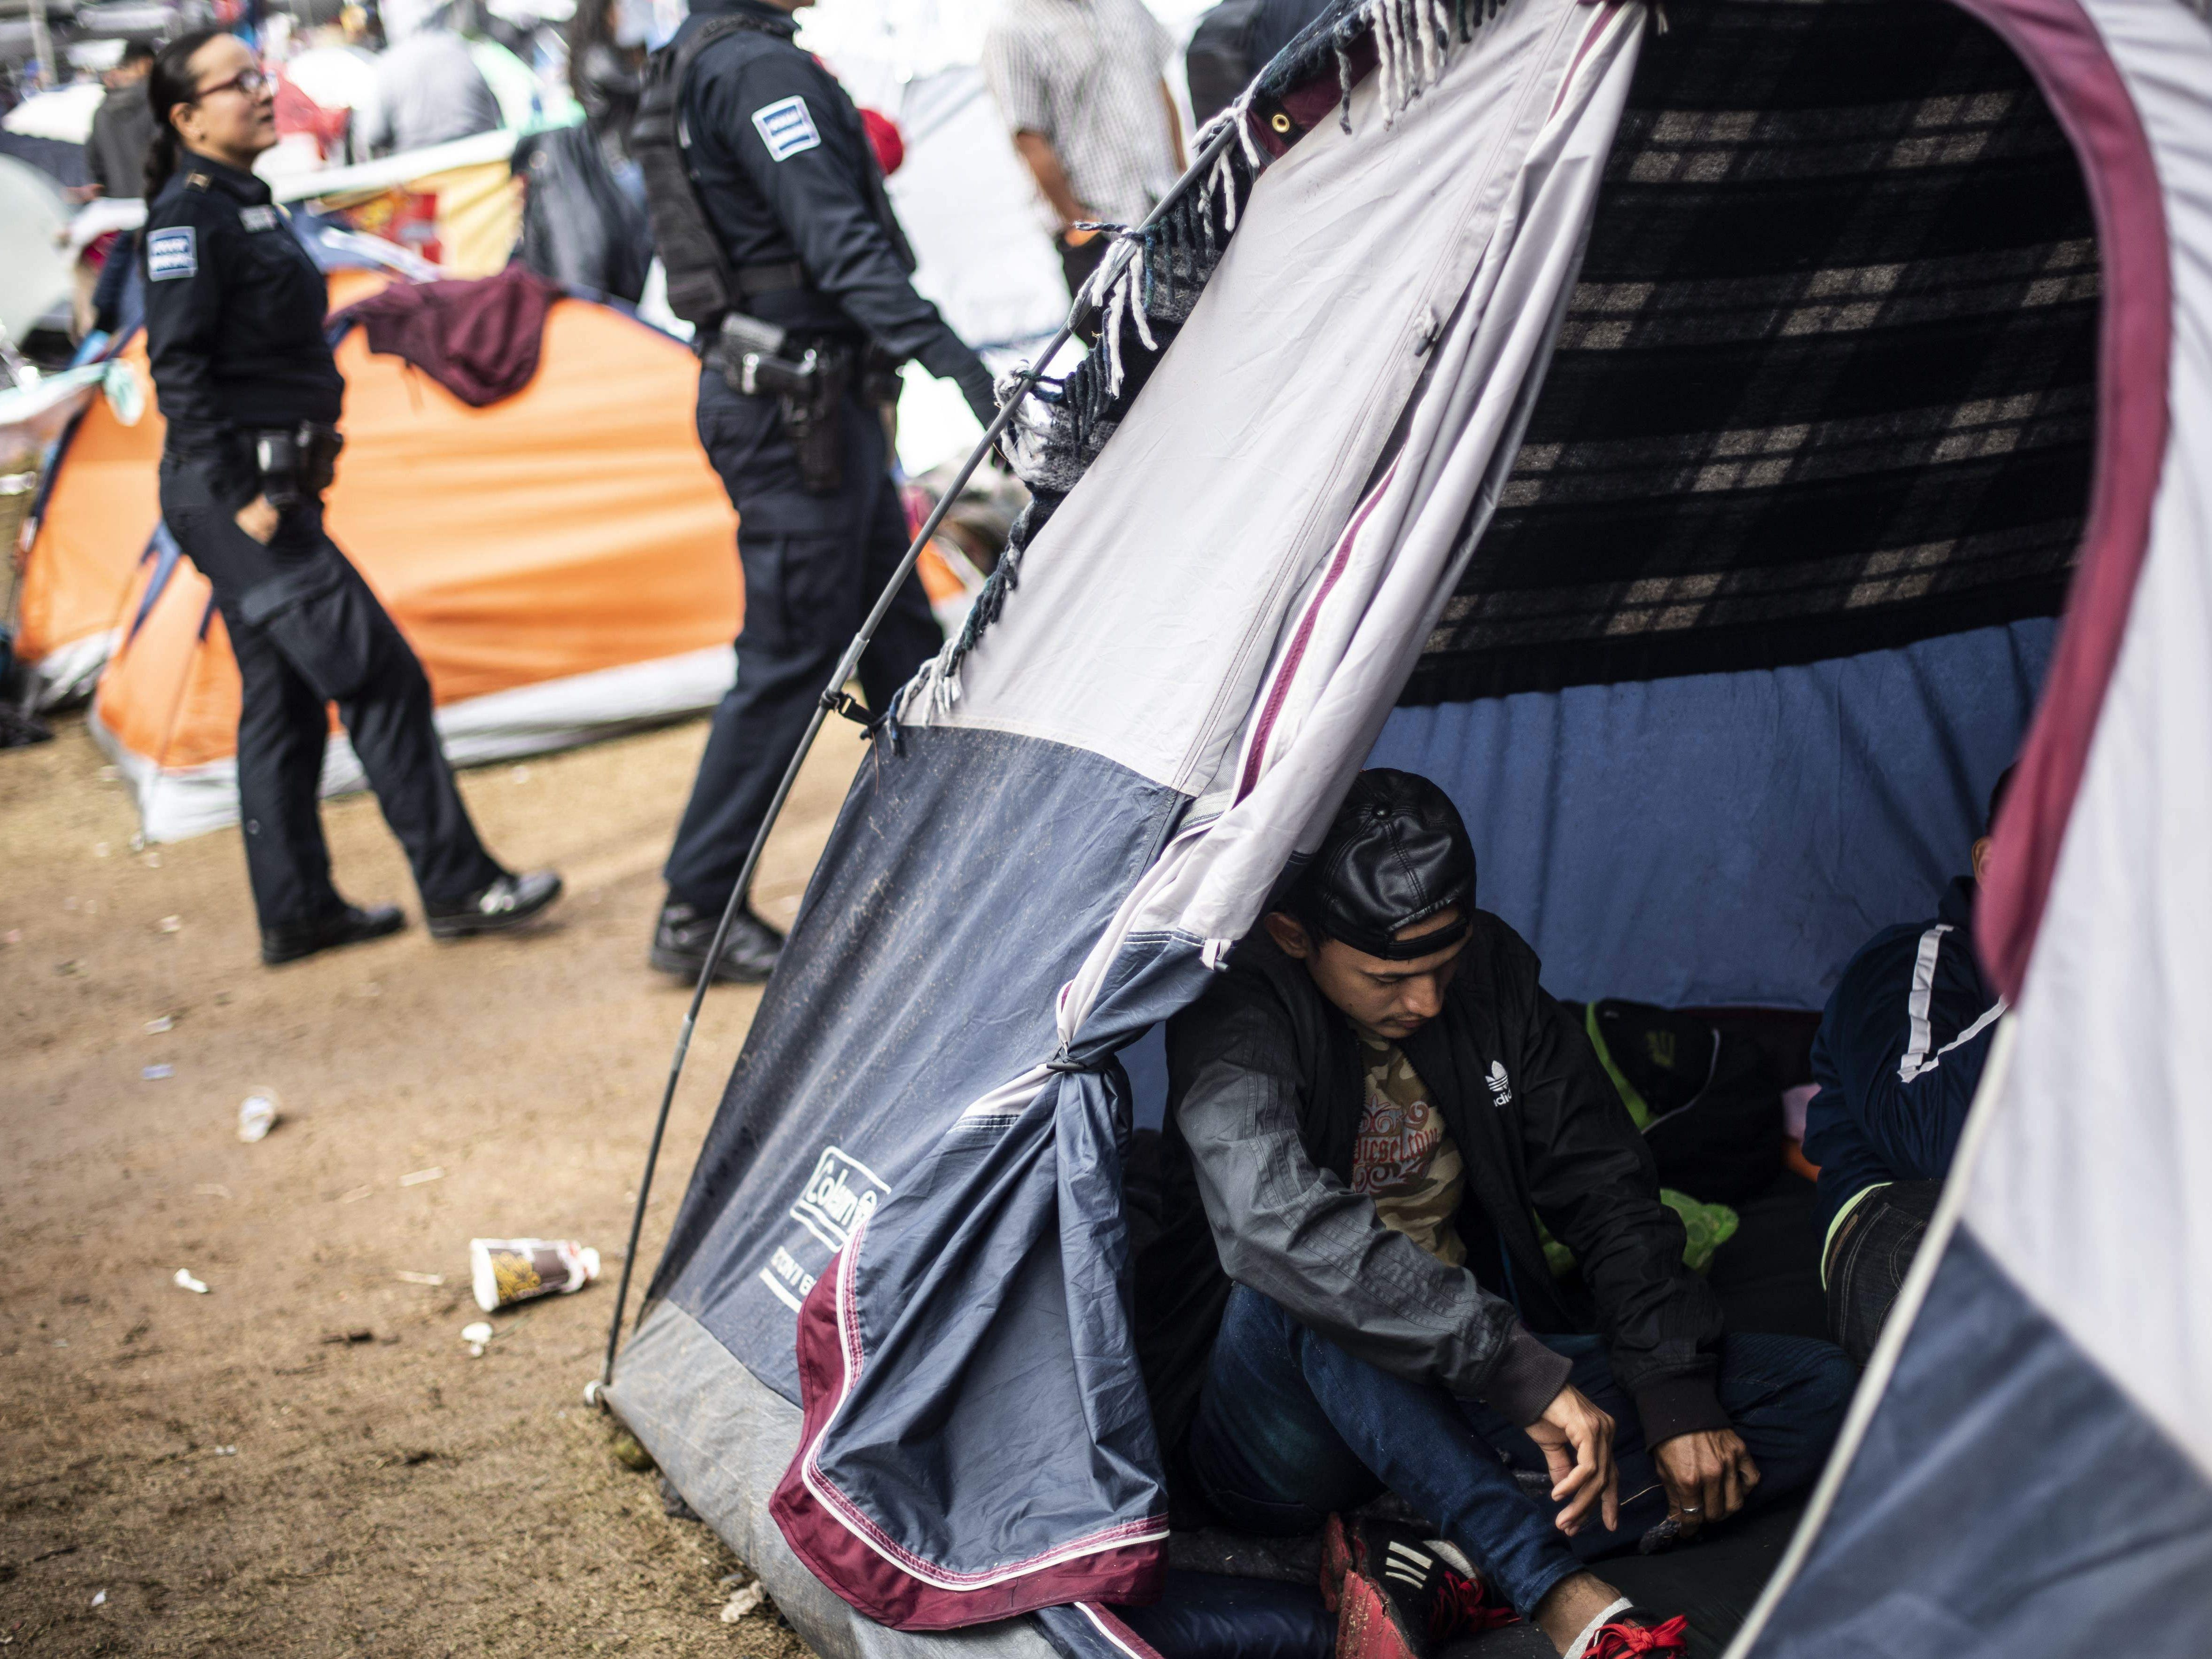 Central American migrants rest at a shelter near the U.S.-Mexico border fence in Tijuana, Baja California state, Mexico, on Nov. 22, 2018.